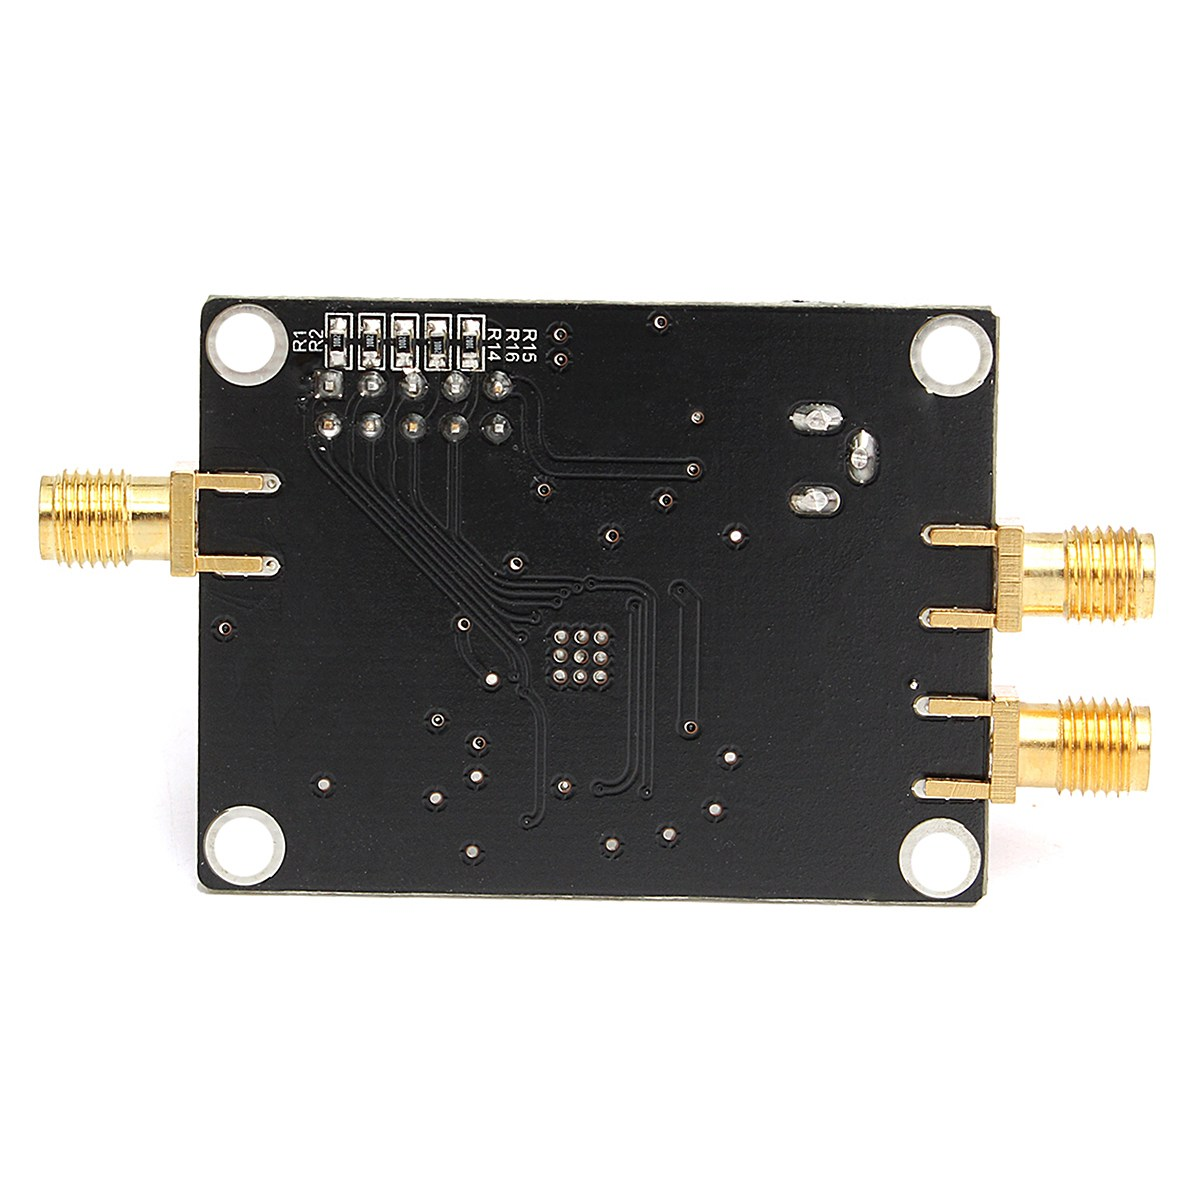 Image 3 - 1PC 35M 4.4GHz PLL RF Signal Source Frequency Synthesizer ADF4351 Development Board Integrated Circuits-in Integrated Circuits from Electronic Components & Supplies